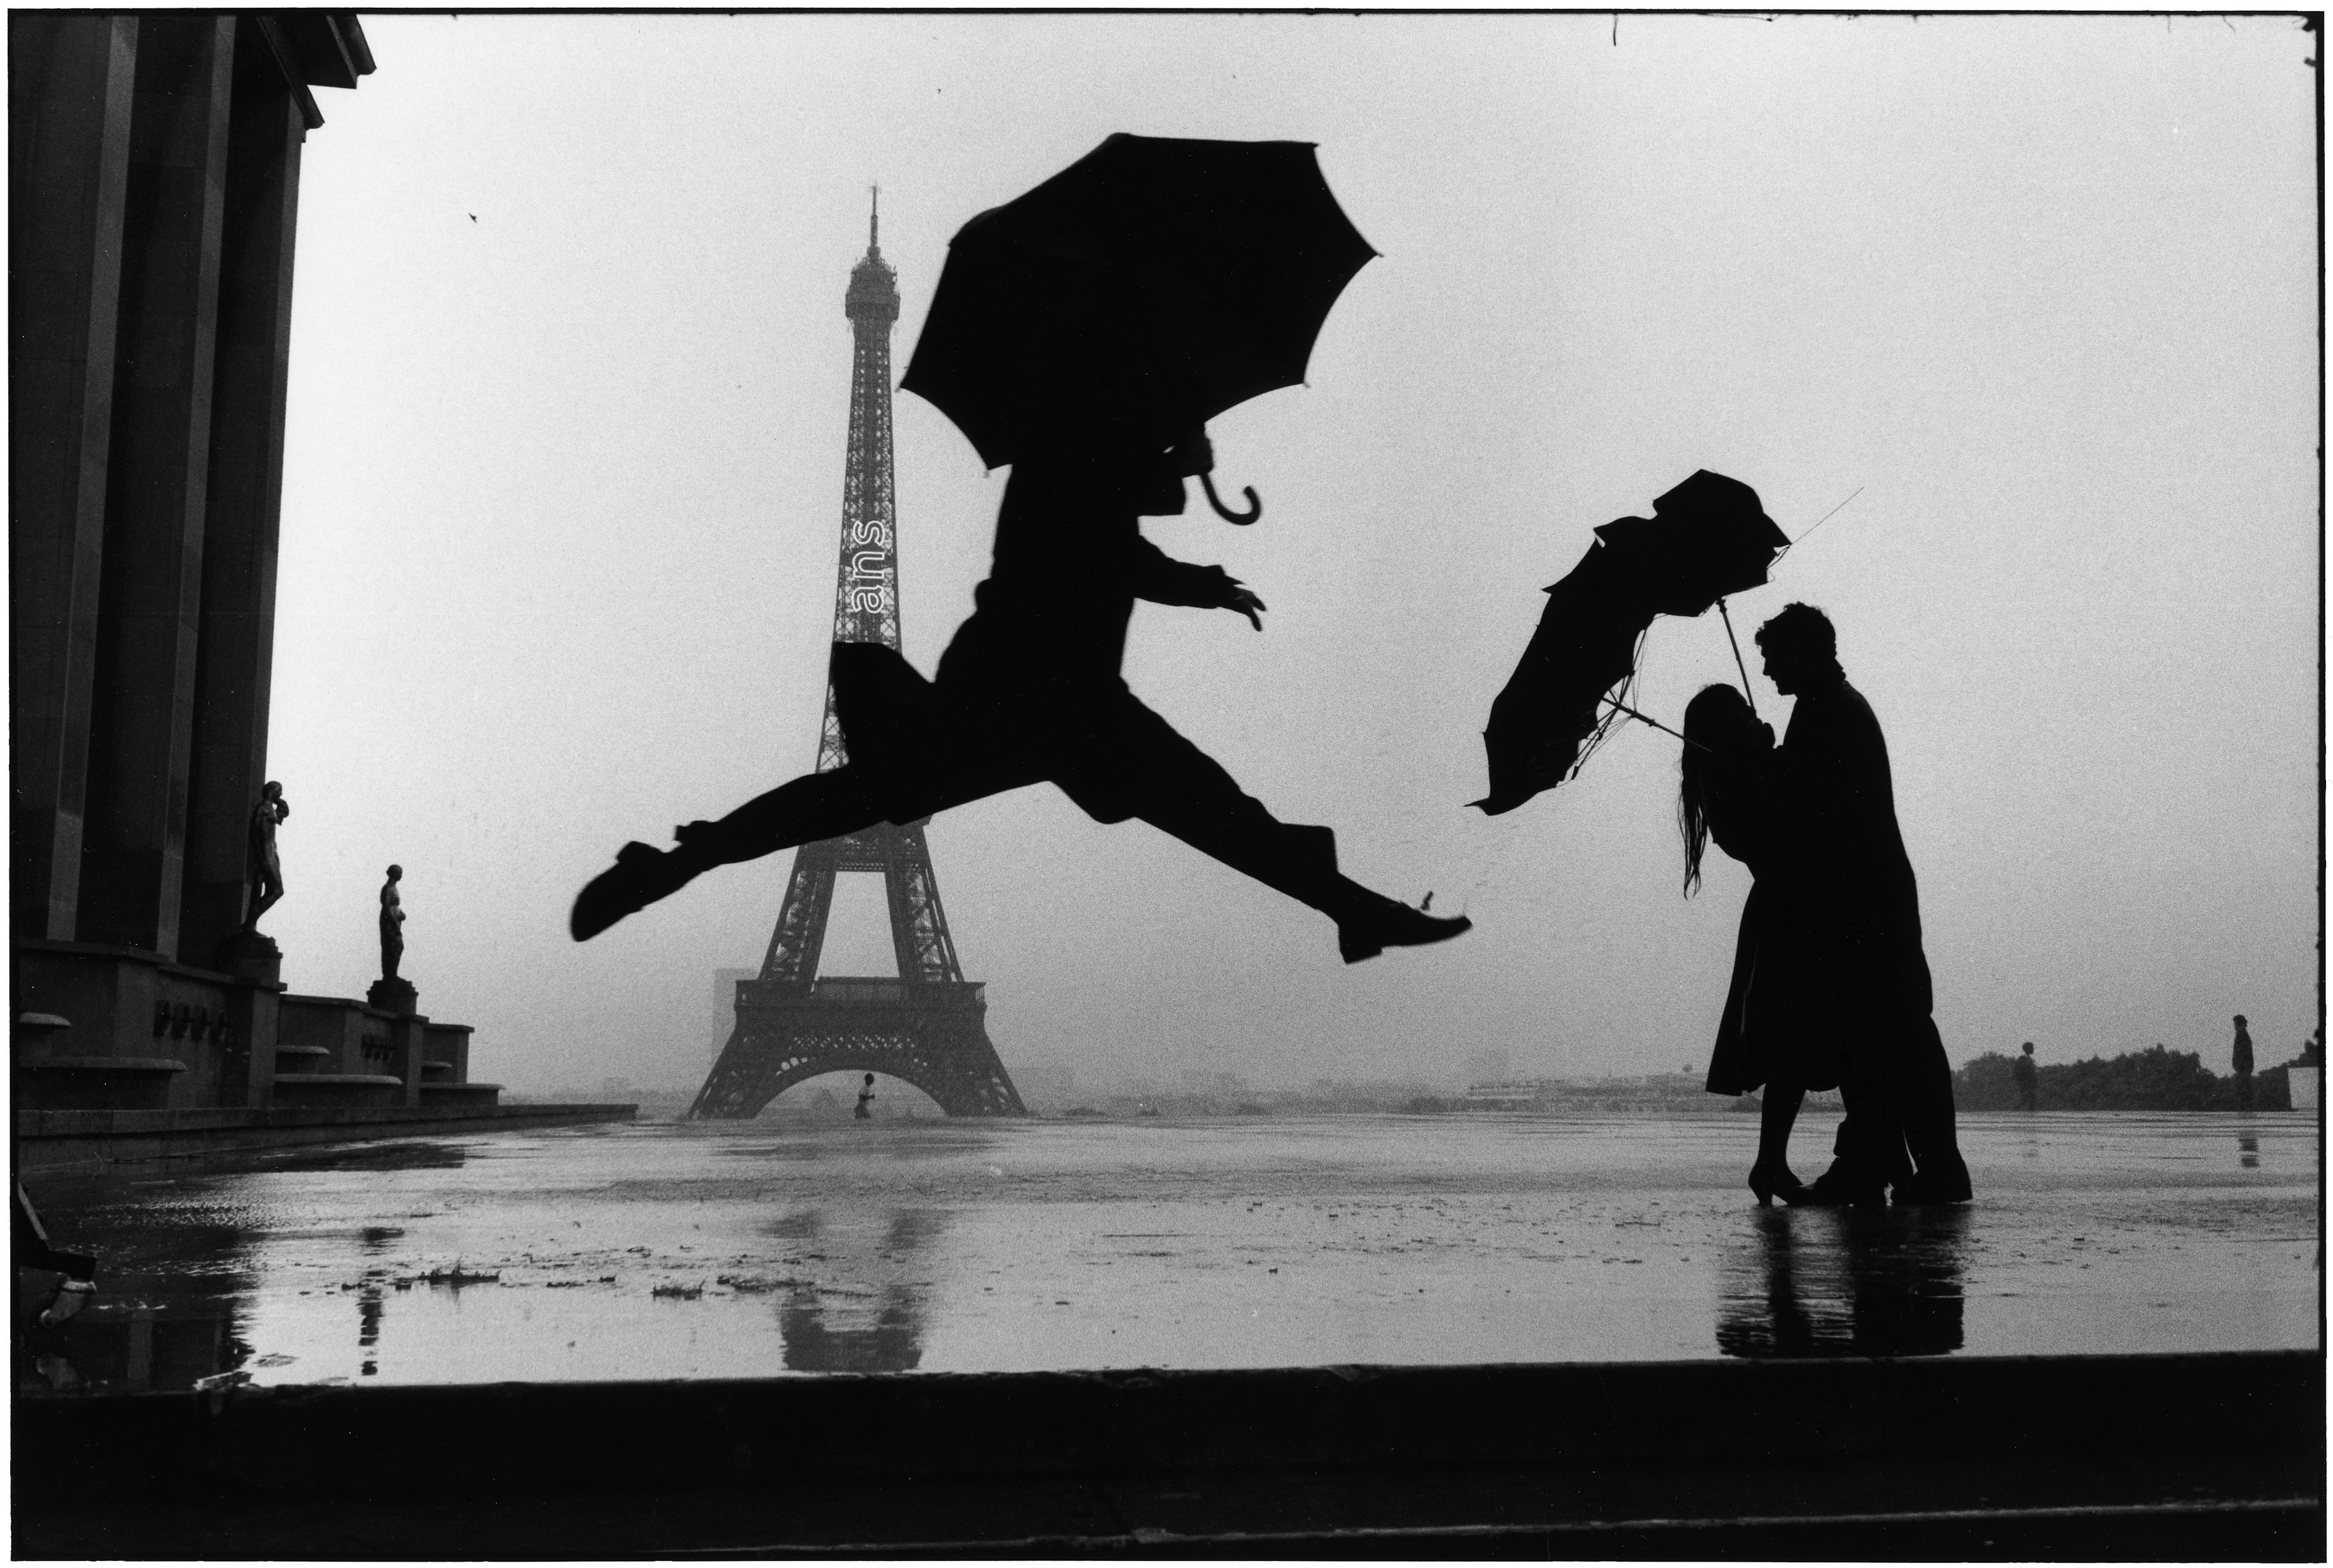 Elliot Erwitt - Paris